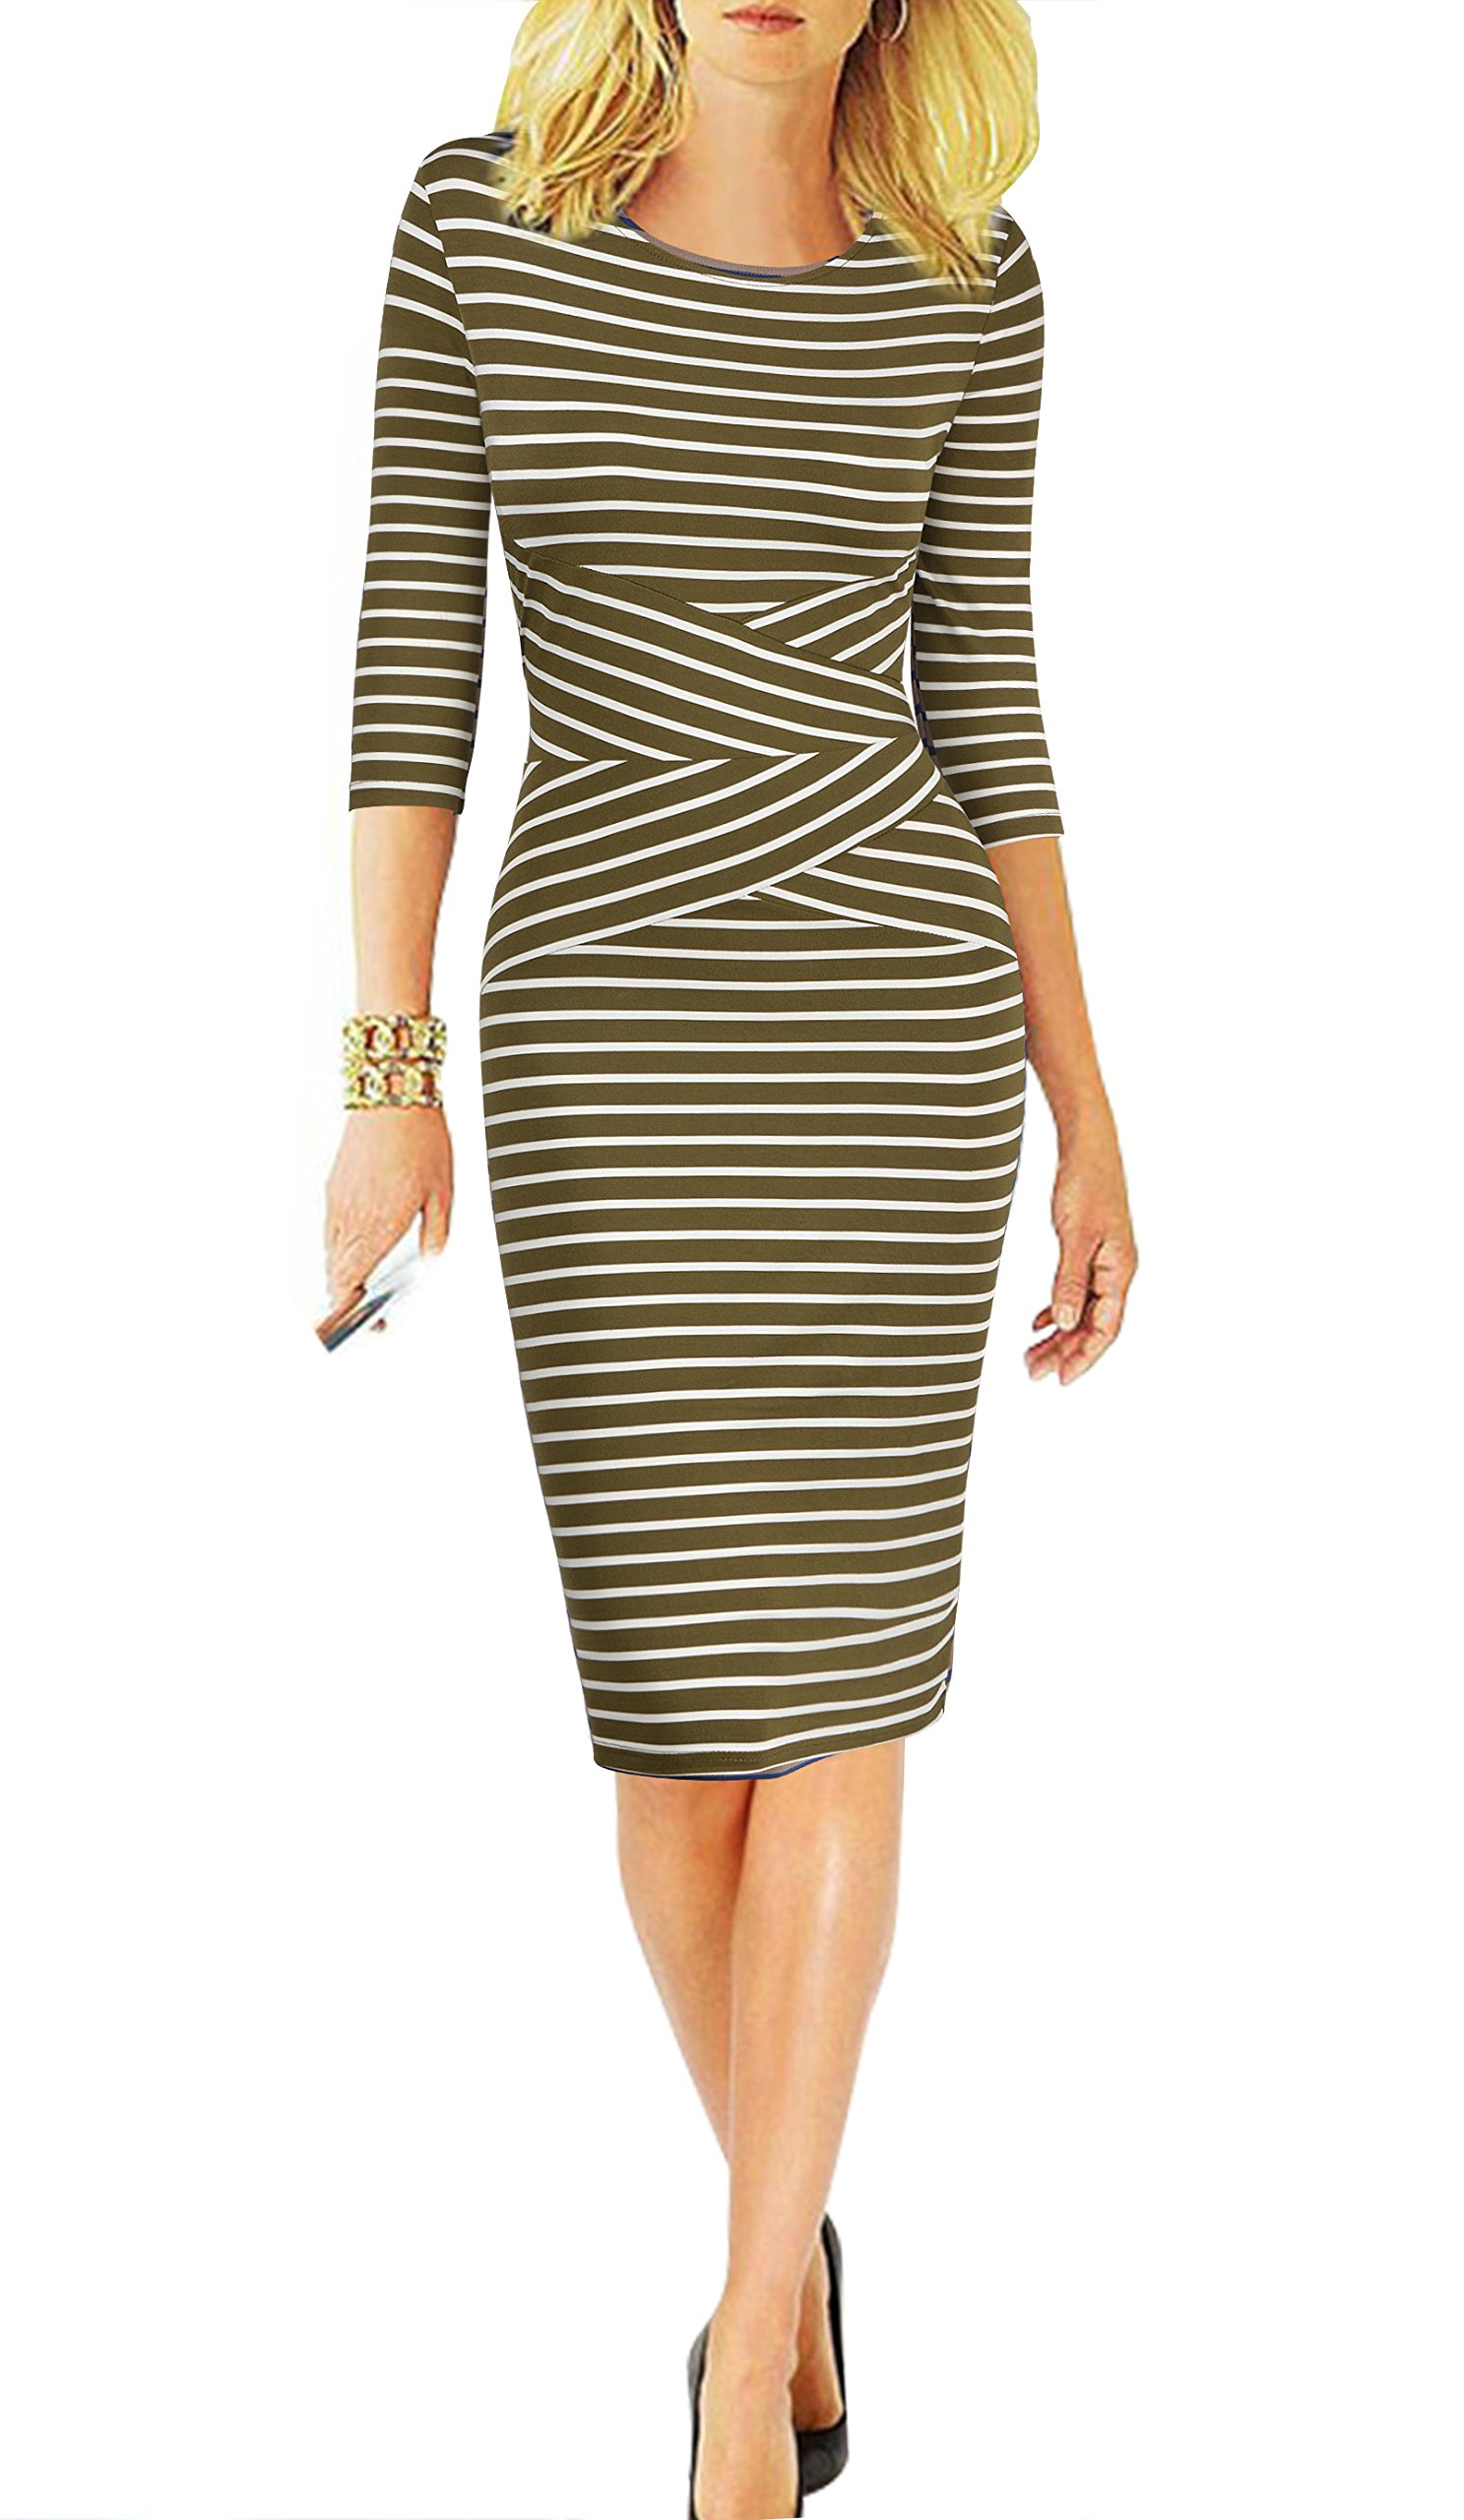 REPHYLLIS Women 3/4 Sleeve Striped Wear to Work Business Cocktail Pencil Dress (Small, Armygreen) by REPHYLLIS® (Image #2)